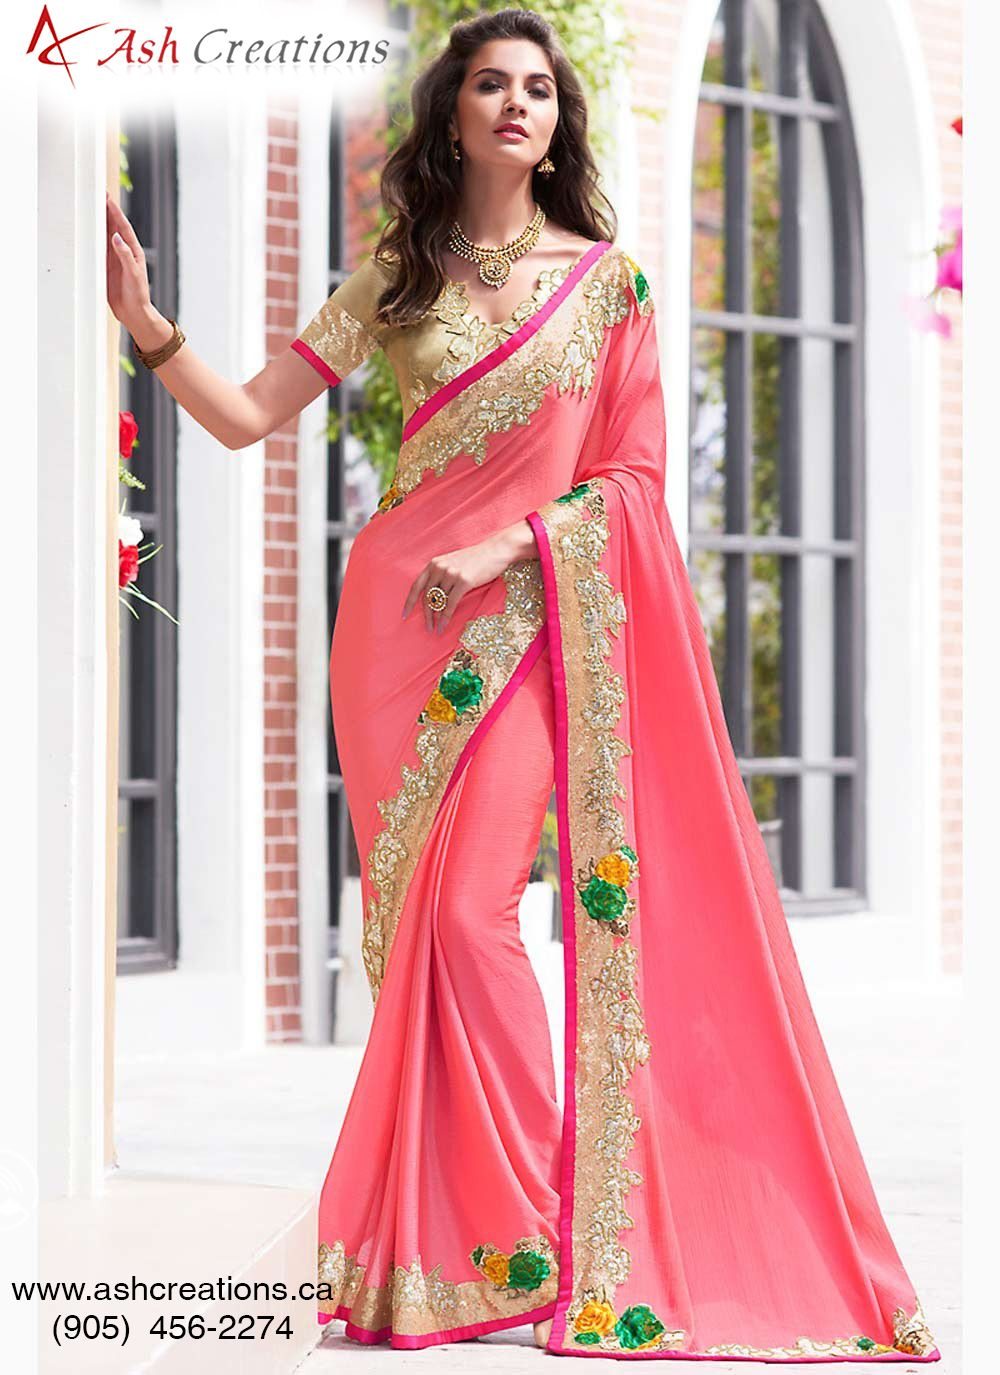 90fda630c44986 Shop Indian bridal wears, party wears clothing at affordable rates in  Mississauga. We offer a wide range of Indian clothing and jewelry in  Toronto and ...